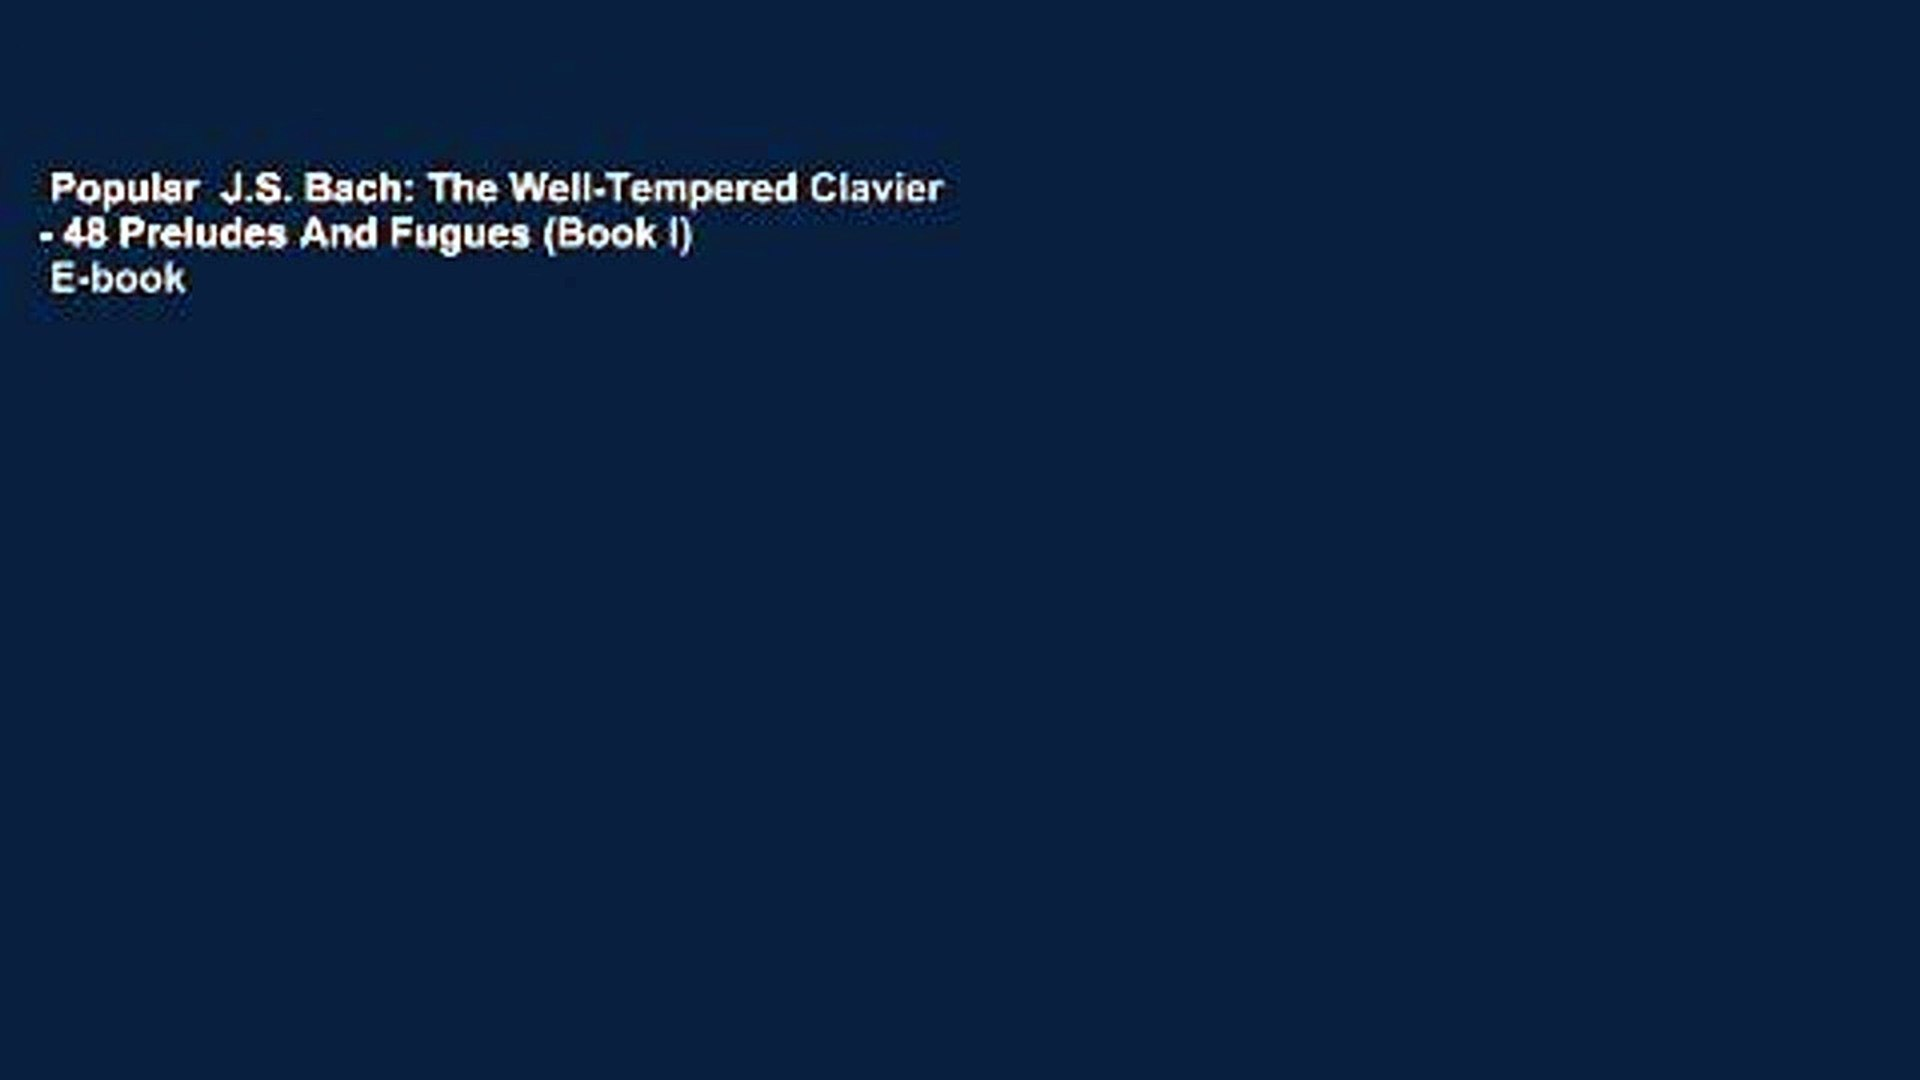 Popular  J.S. Bach: The Well-Tempered Clavier - 48 Preludes And Fugues (Book I)  E-book